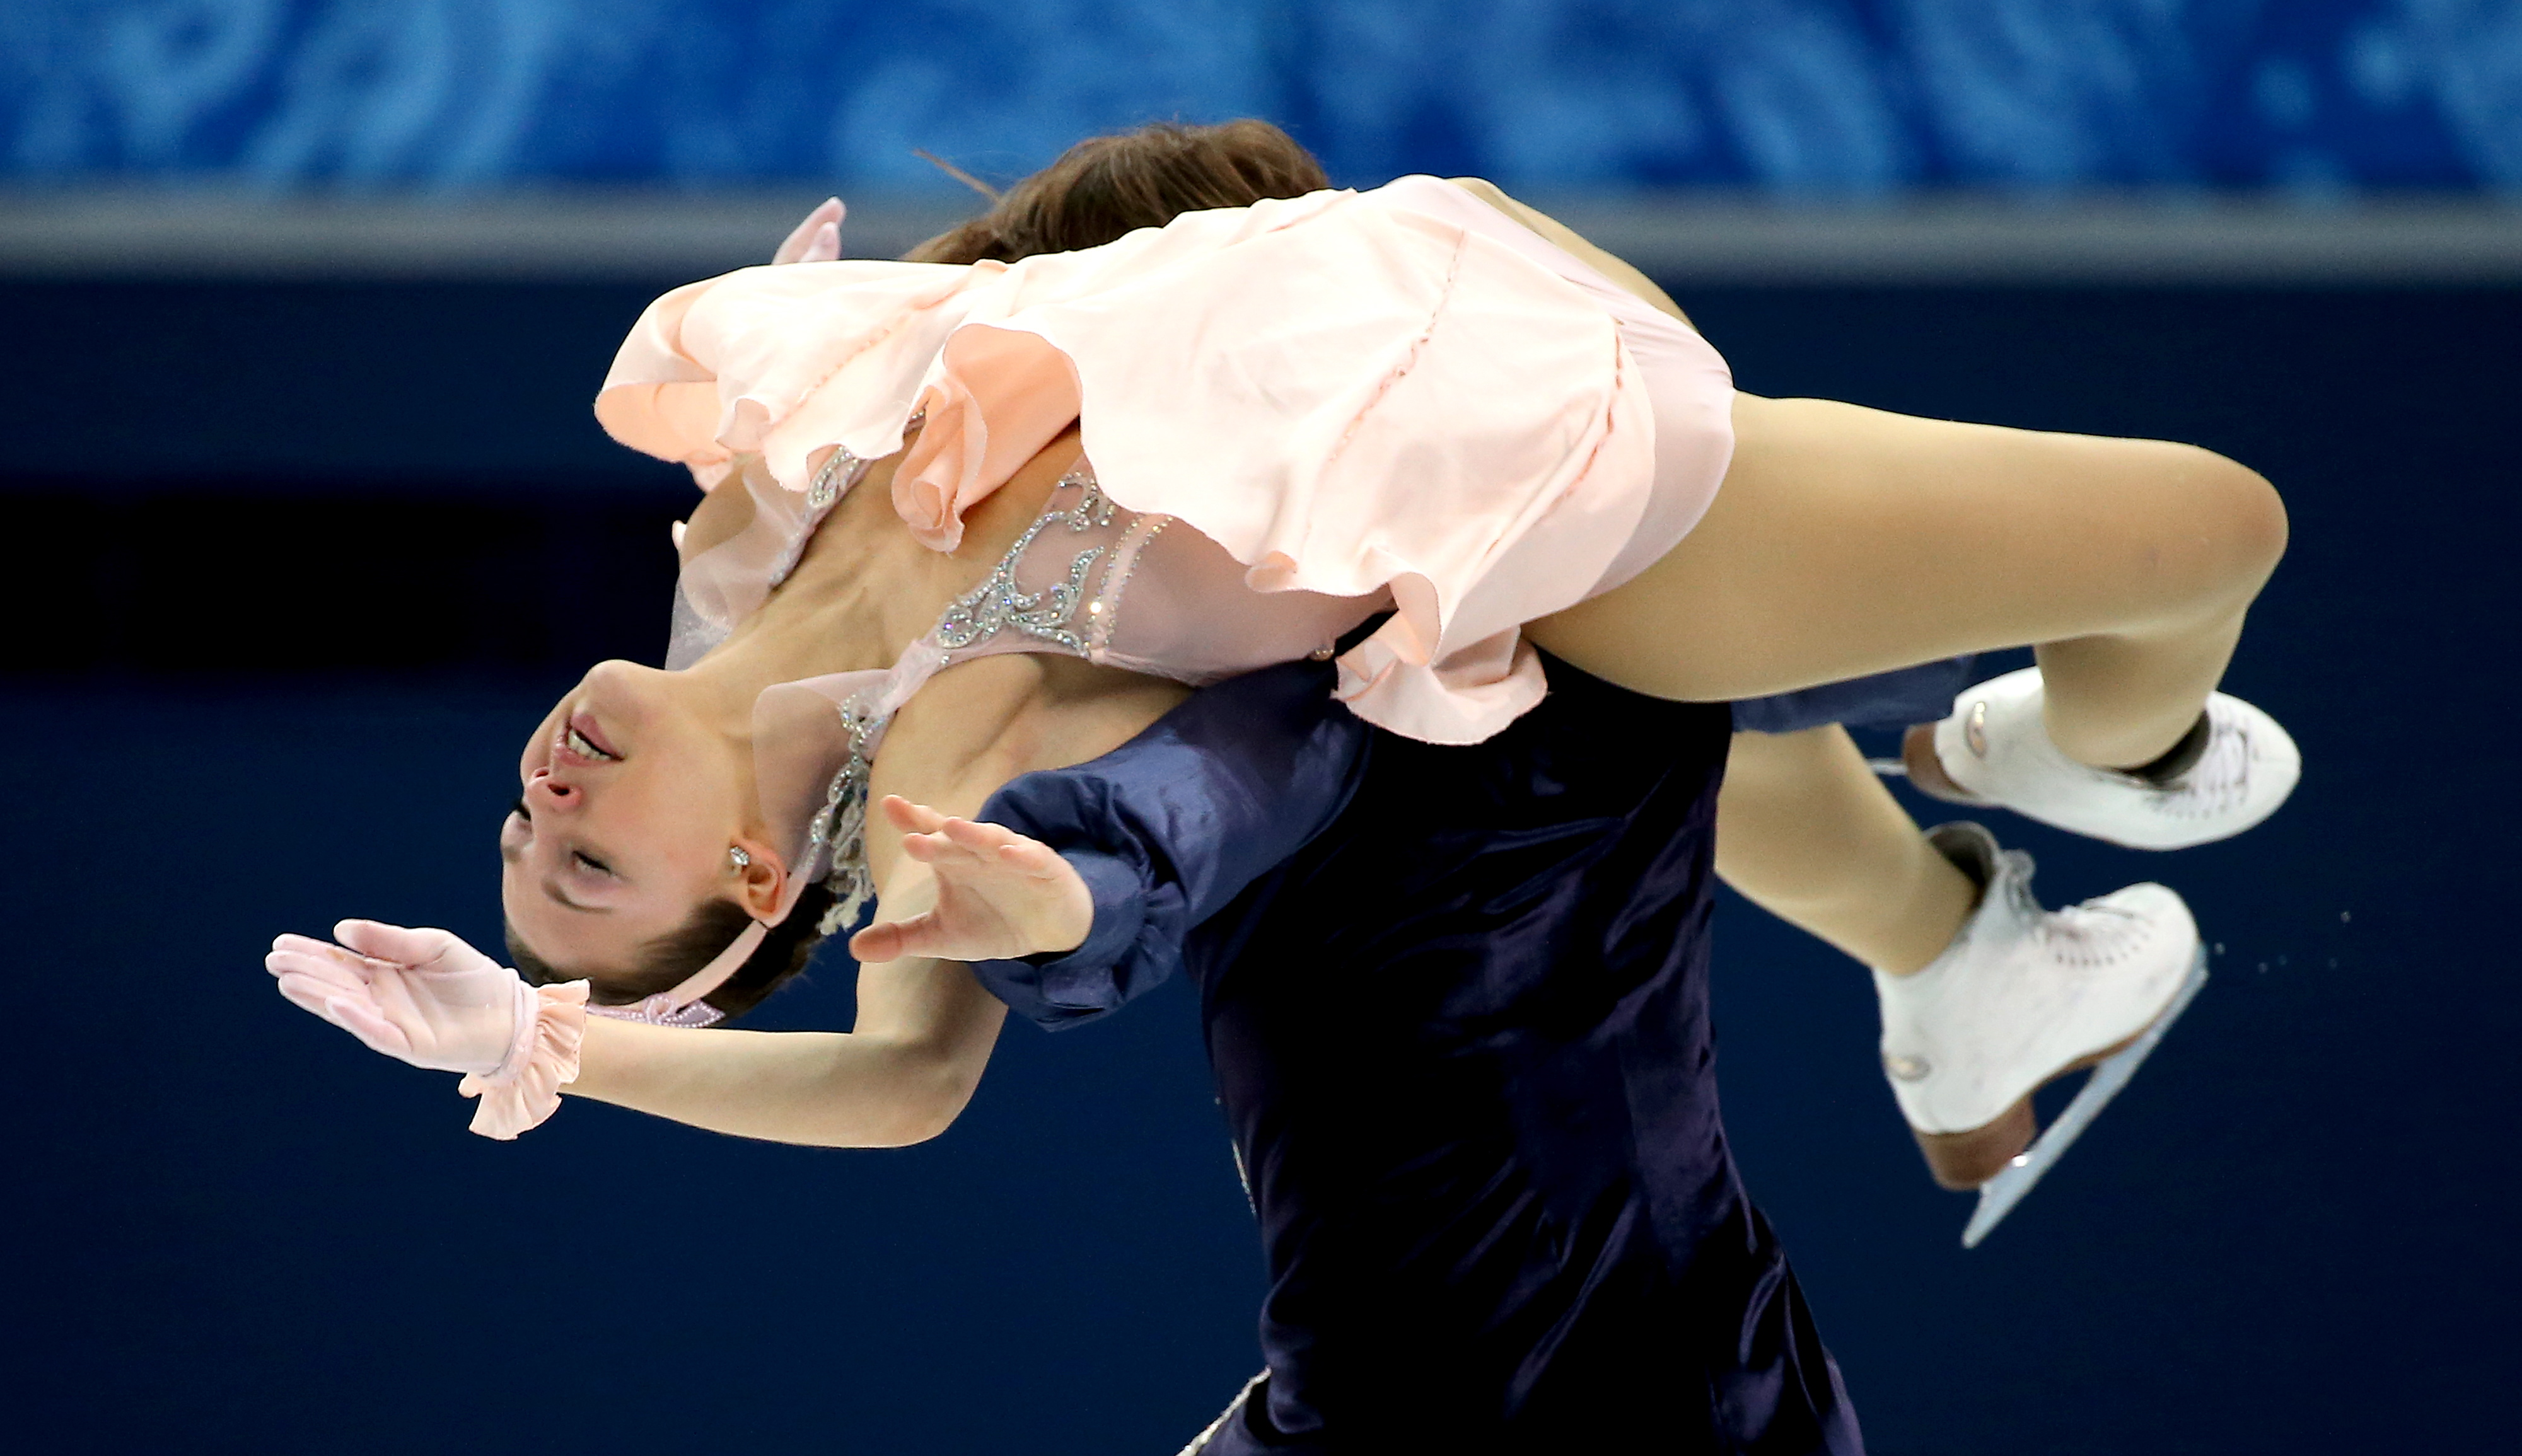 Tanja Kolbe and Stefano Caruso of Germany perform in the Figure Skating Ice Dance Free Dance at Iceberg Skating Palace.